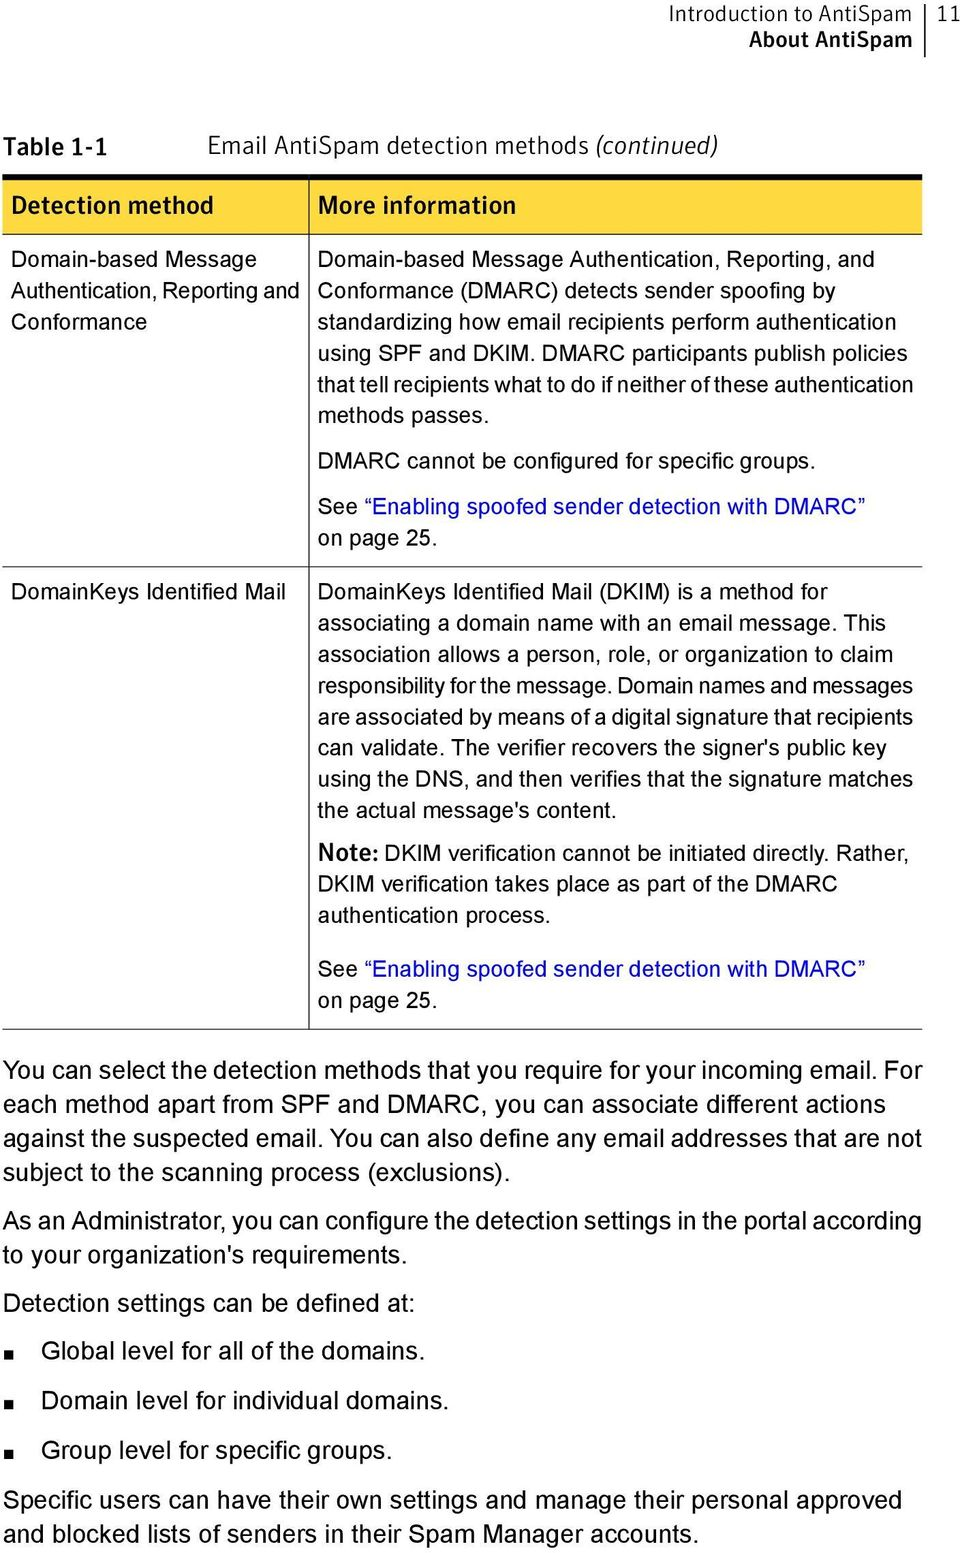 DMARC participants publish policies that tell recipients what to do if neither of these authentication methods passes. DMARC cannot be configured for specific groups.